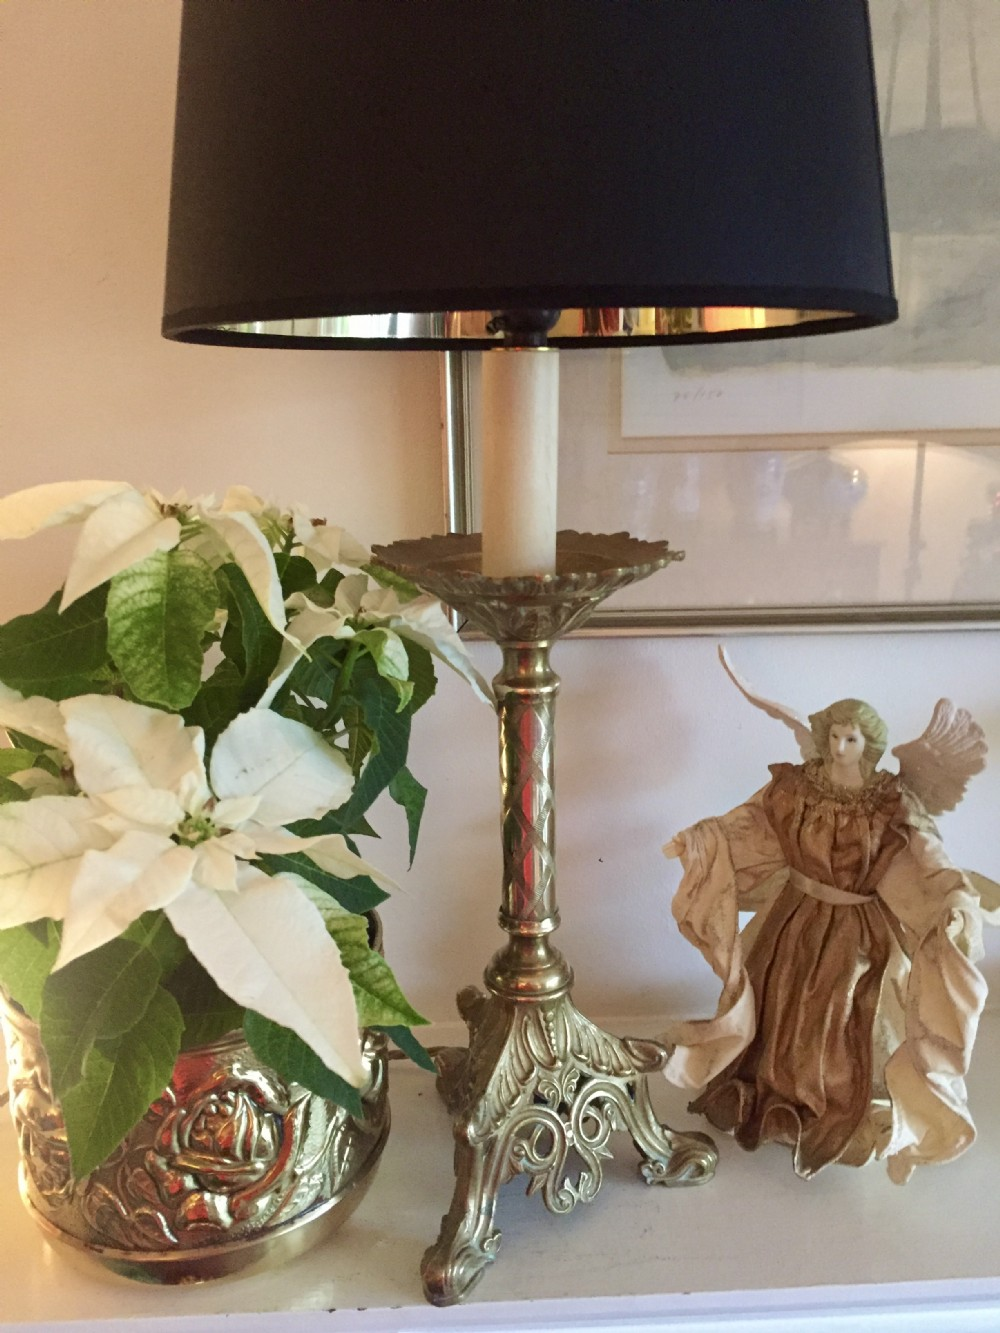 19th century table lamp in bronze